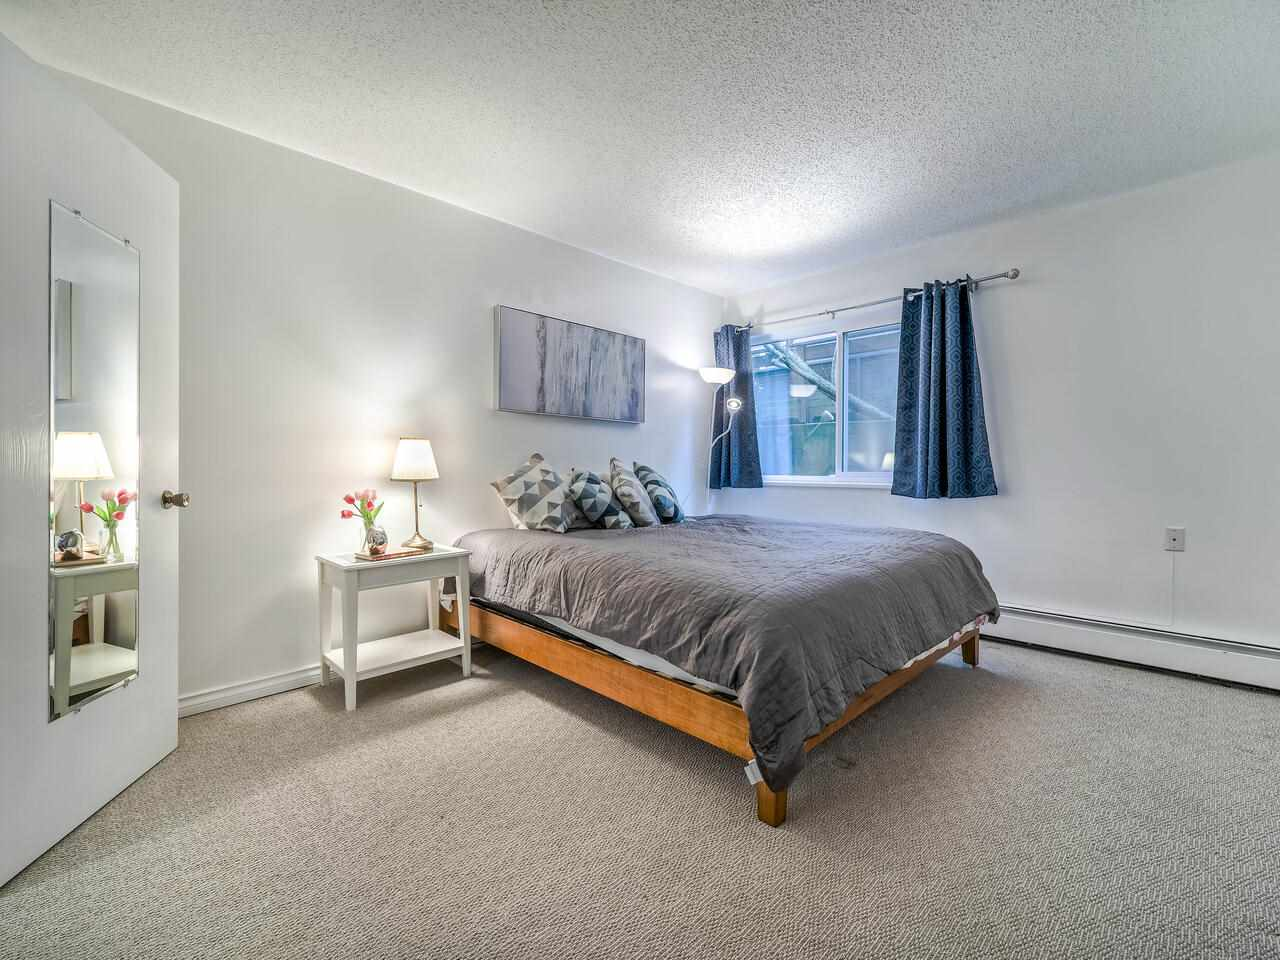 108 2250 OXFORD STREET - Hastings Apartment/Condo for sale, 1 Bedroom (R2528239) - #12